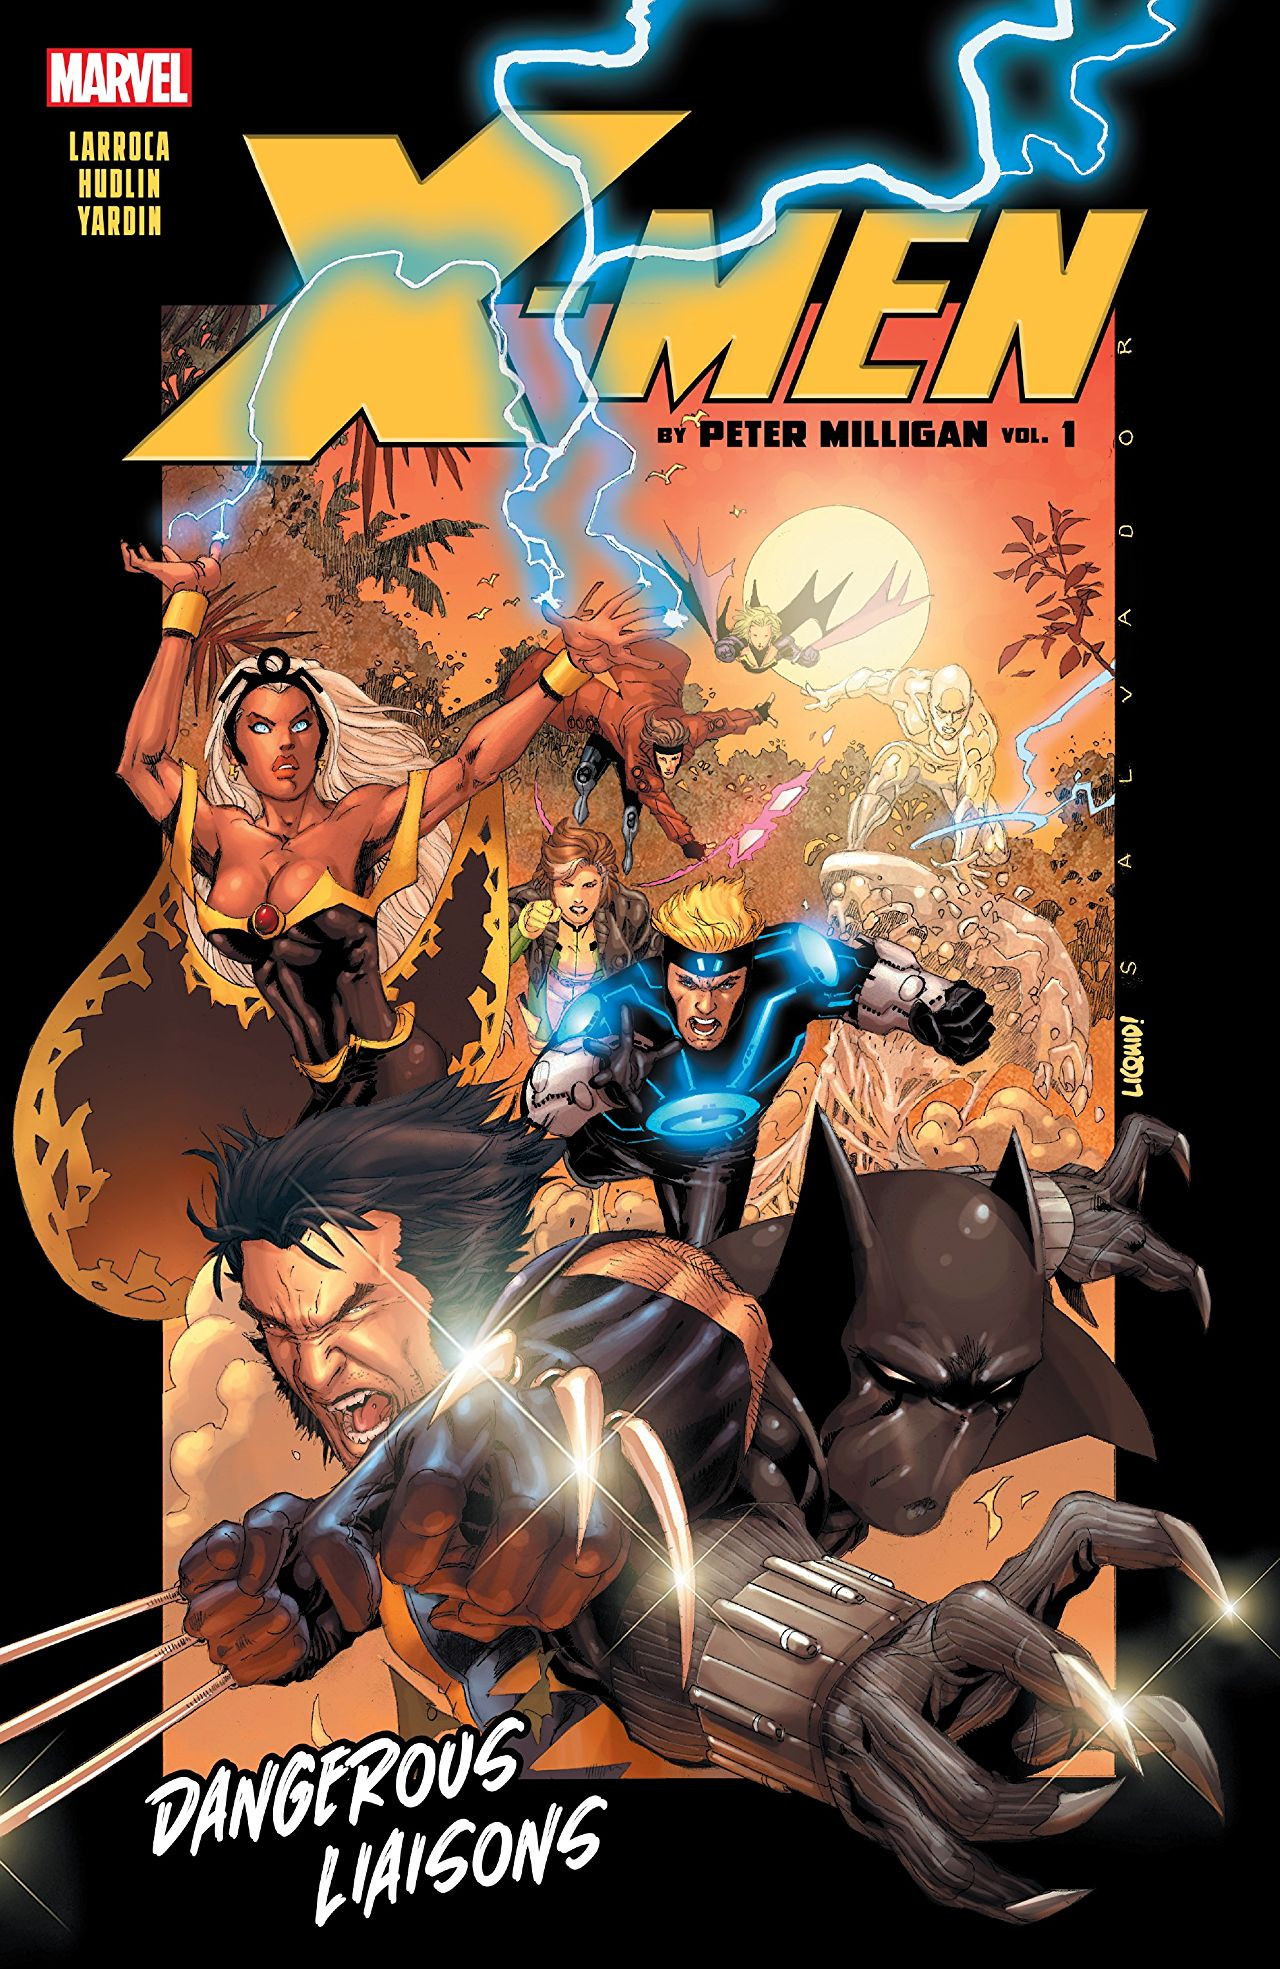 X-Men By Peter Milligan Vol. 1: Dangerous Liaisons (Trade Paperback)